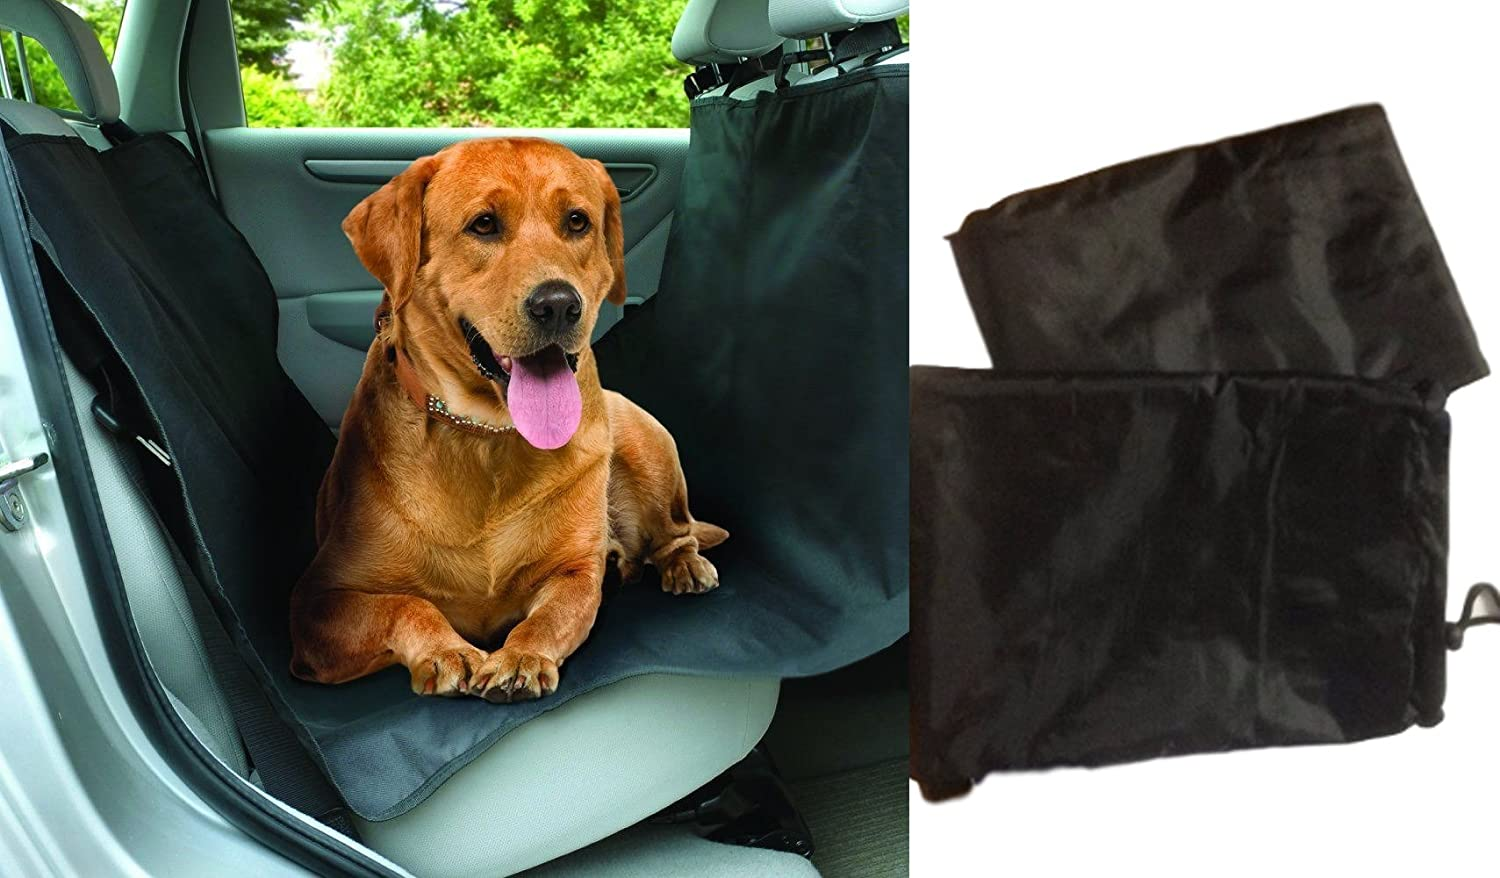 New Pet Dog Rear Back Seat Auto Car Waterproof Blanket Cover With Pouch Protector For Car does not apply